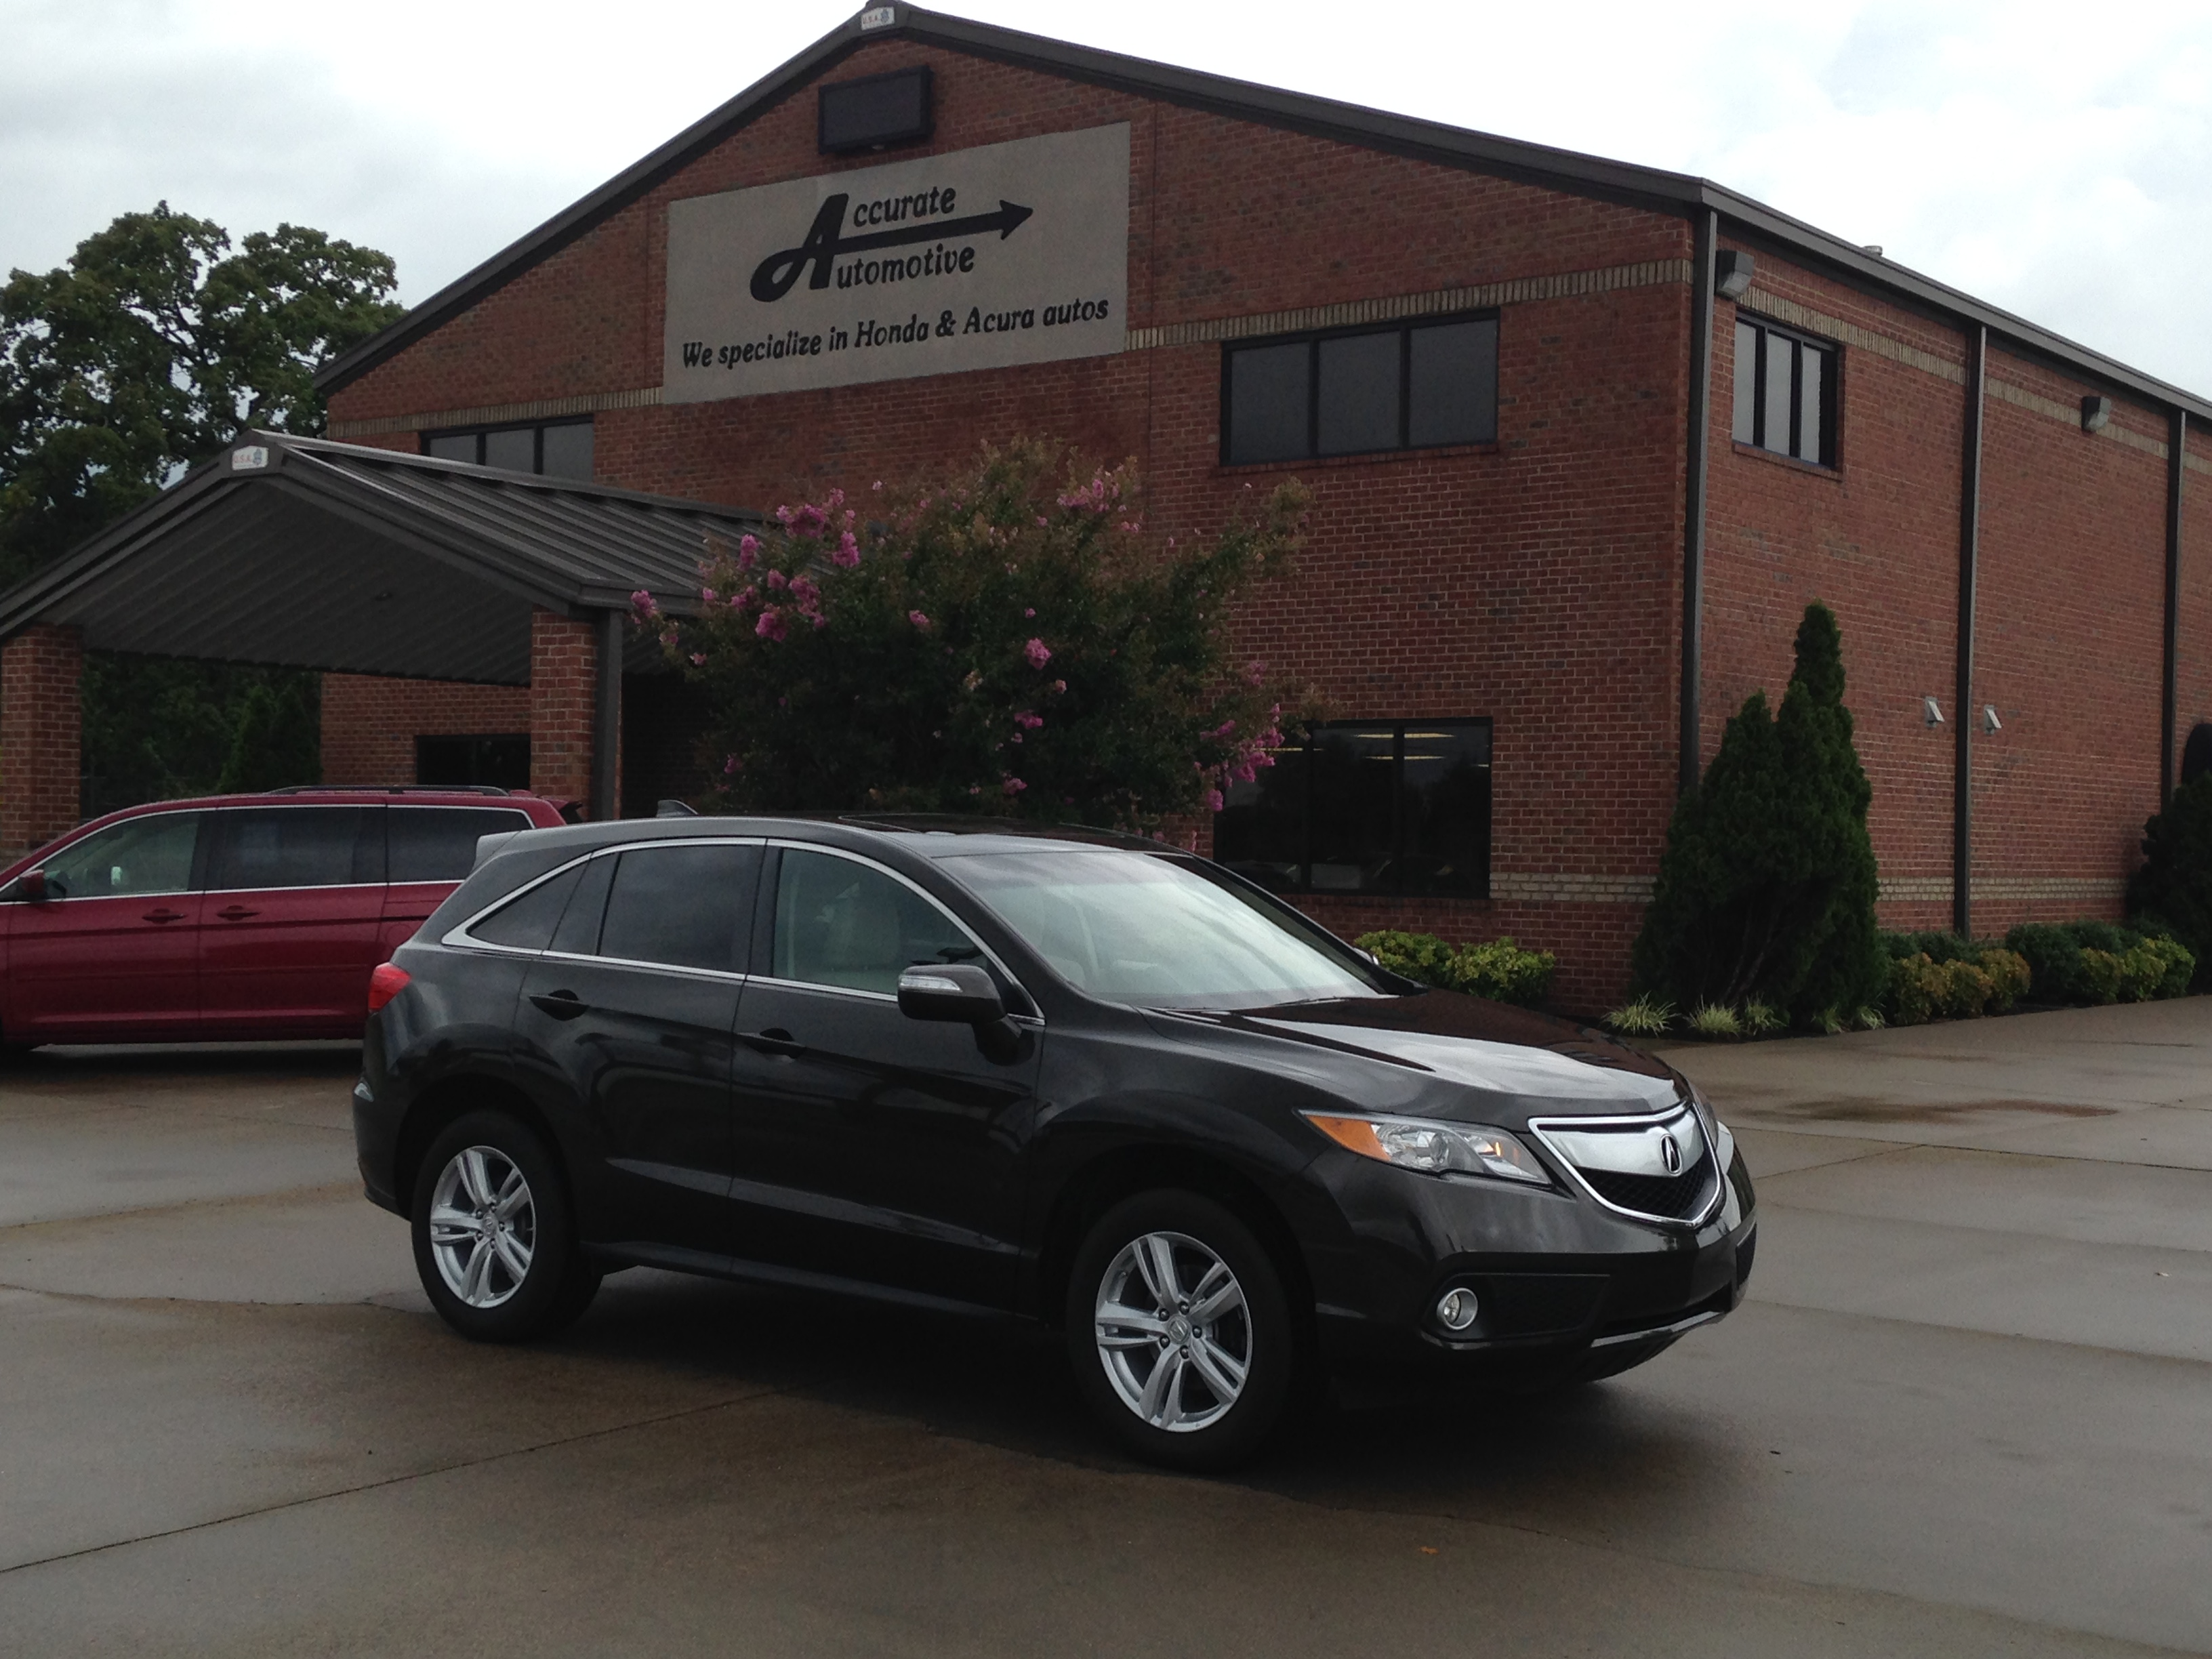 in tech mdx direct presents definition acura hd extended warranty watch chicago entertainment this cars high sport